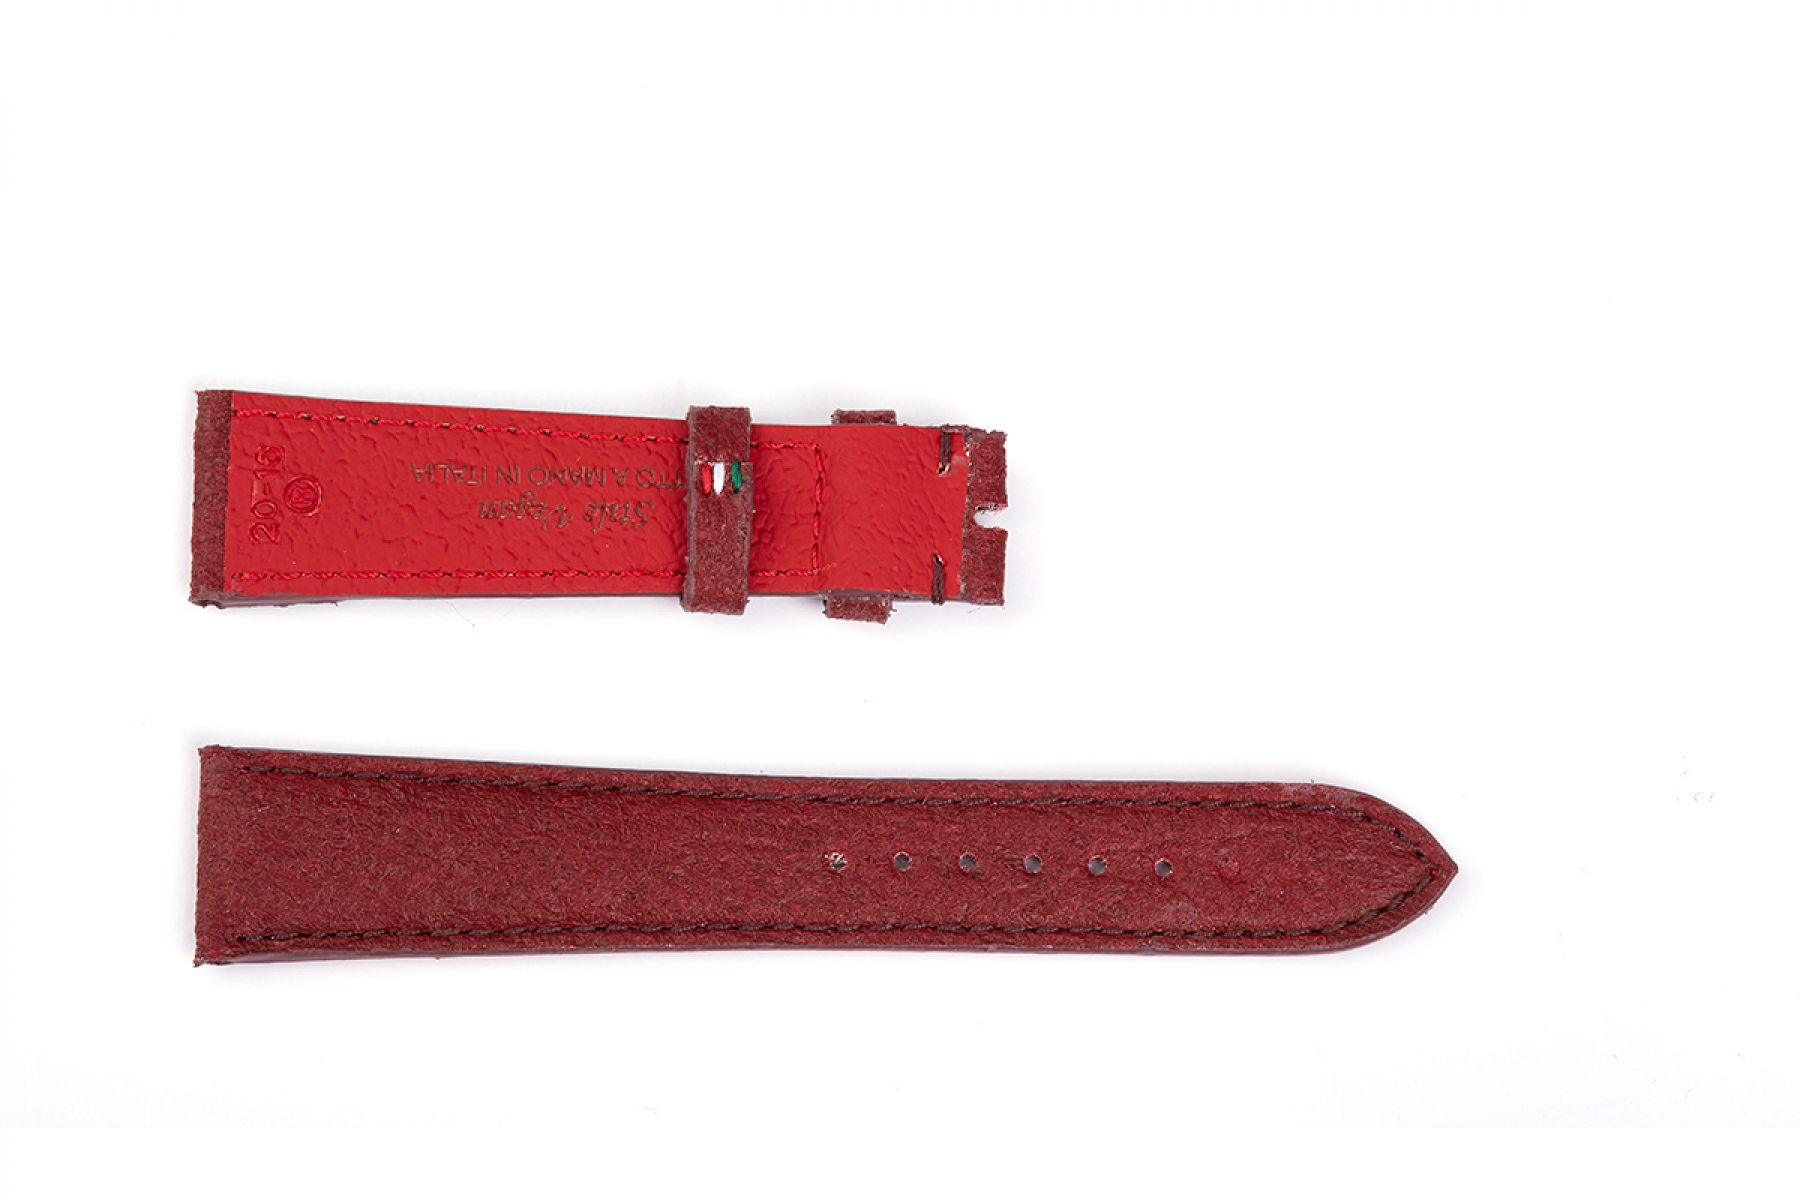 Mulberry Bordeaux Pinatex Strap 16mm, 18mm, 19mm, 20mm, 21mm, 22mm General style